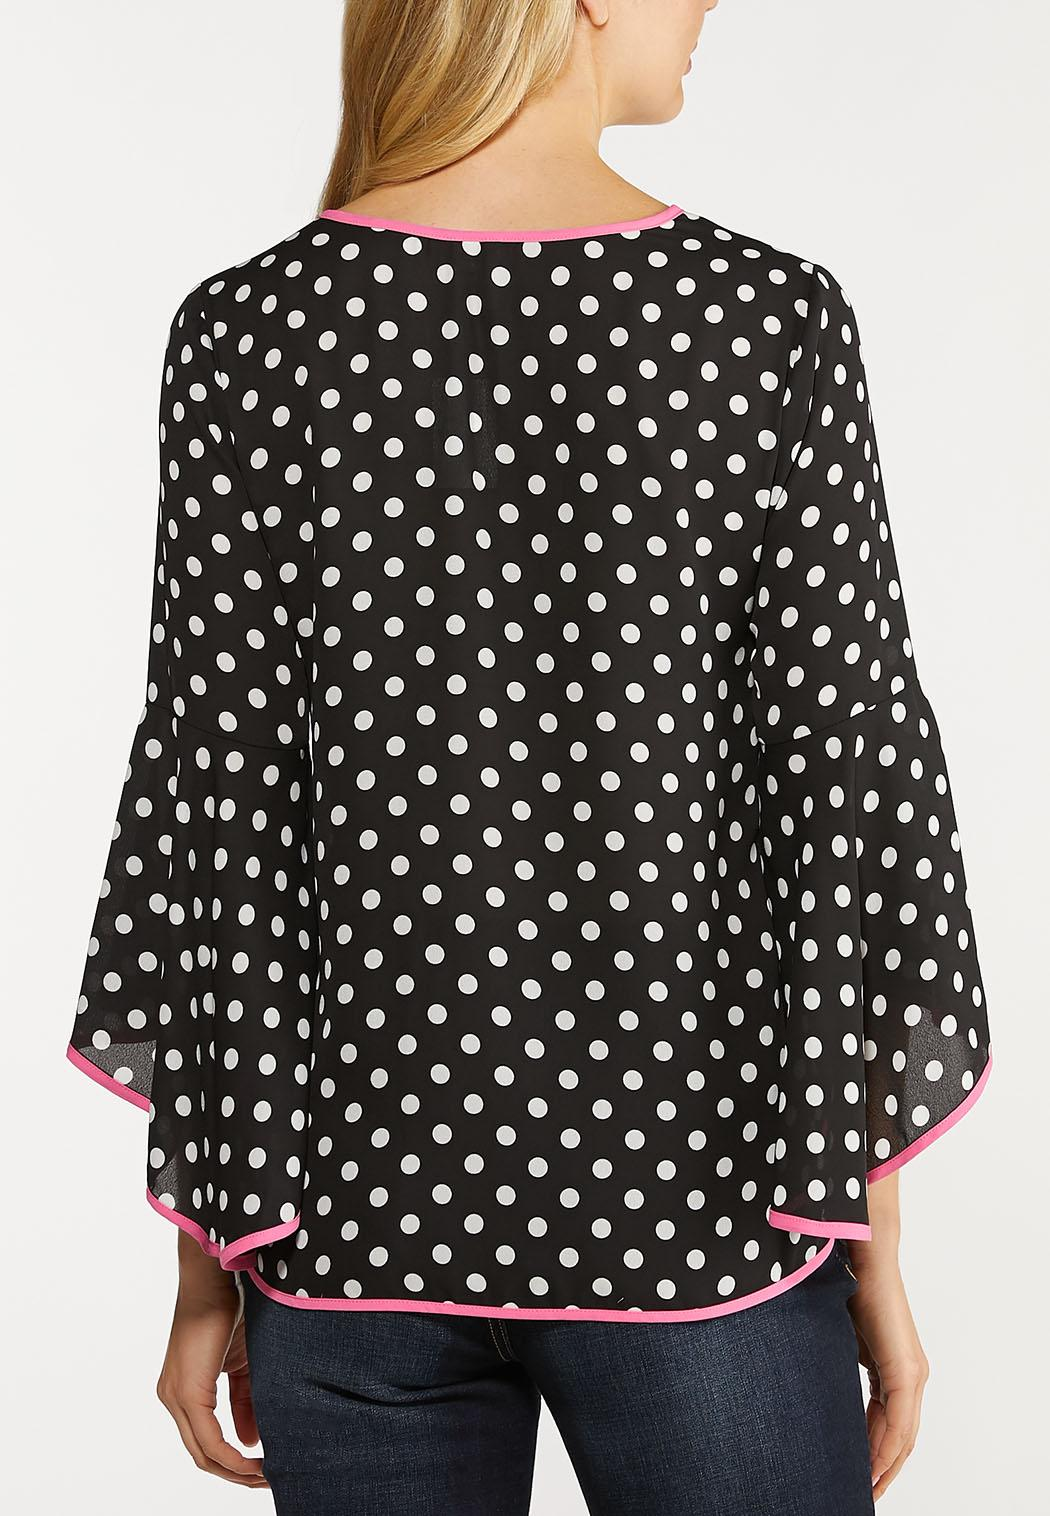 Plus Size Piped Polka Dot Top (Item #44126609)